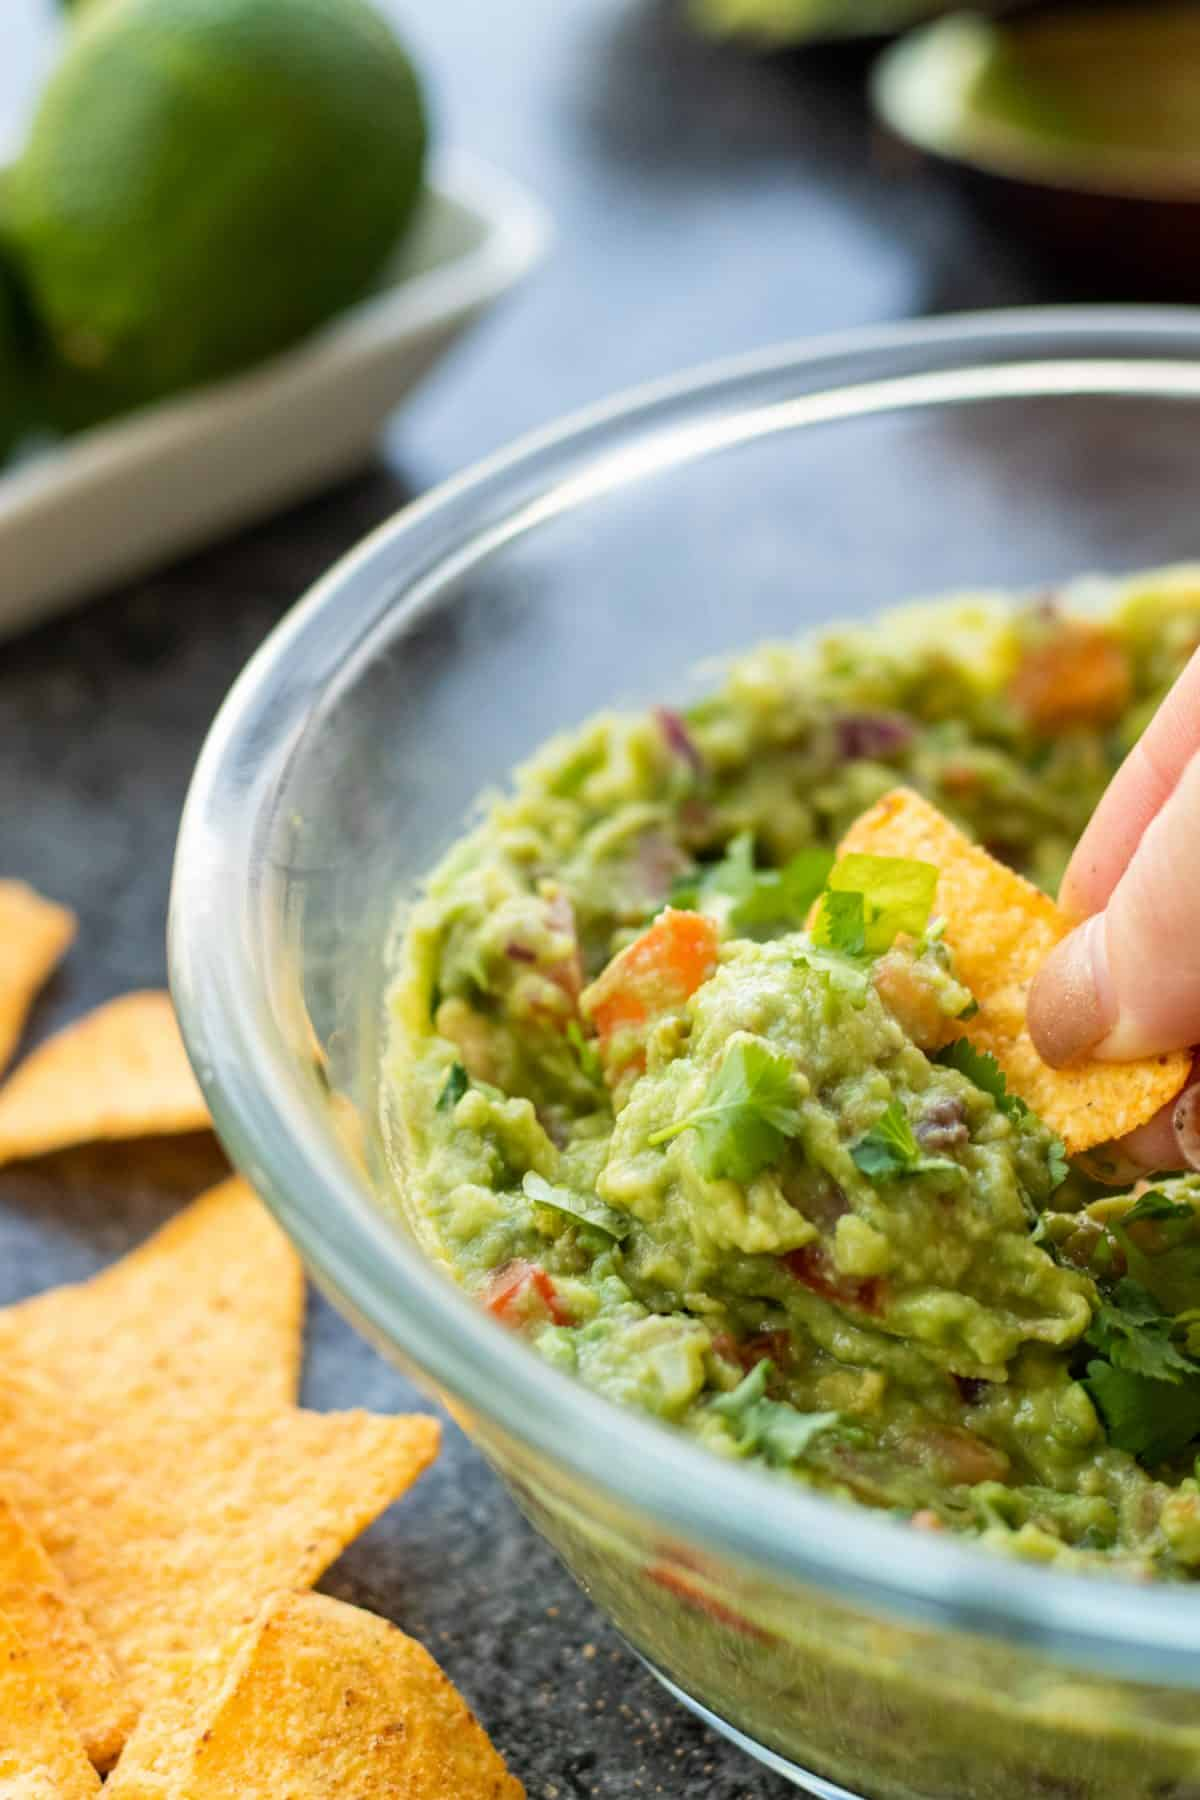 side view of a bowl of guacamole with a chip being dipped into it